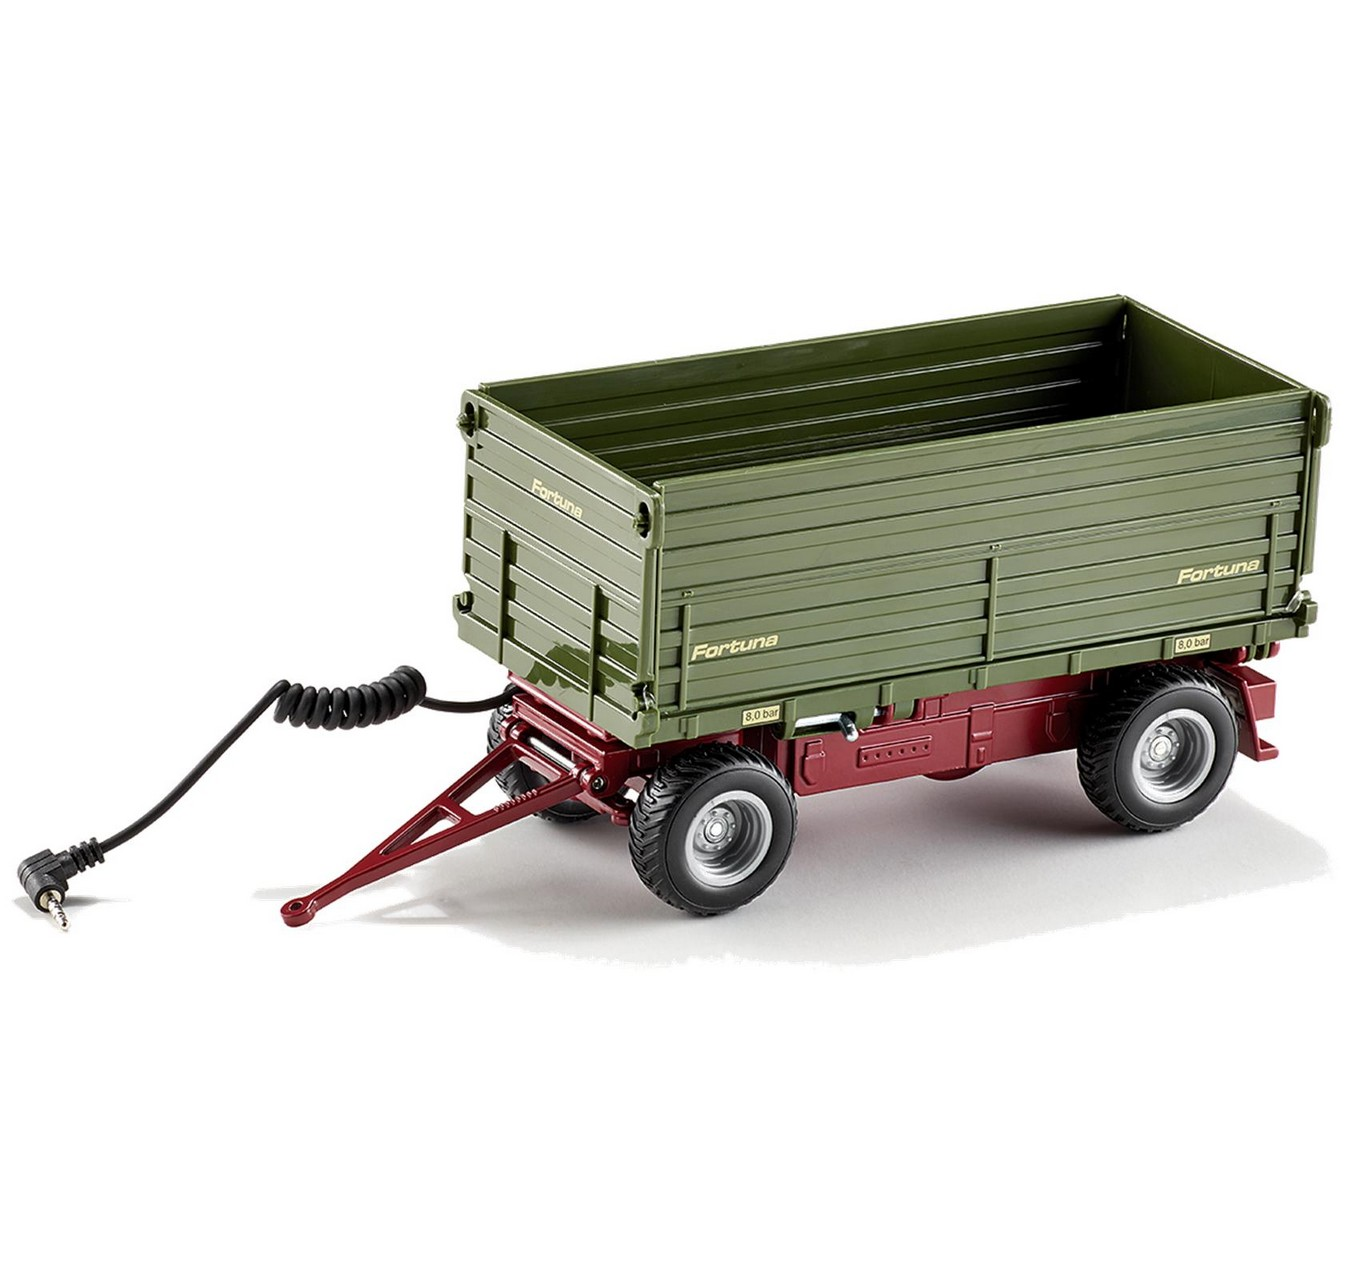 2 Way Tipping Trailer - R/C